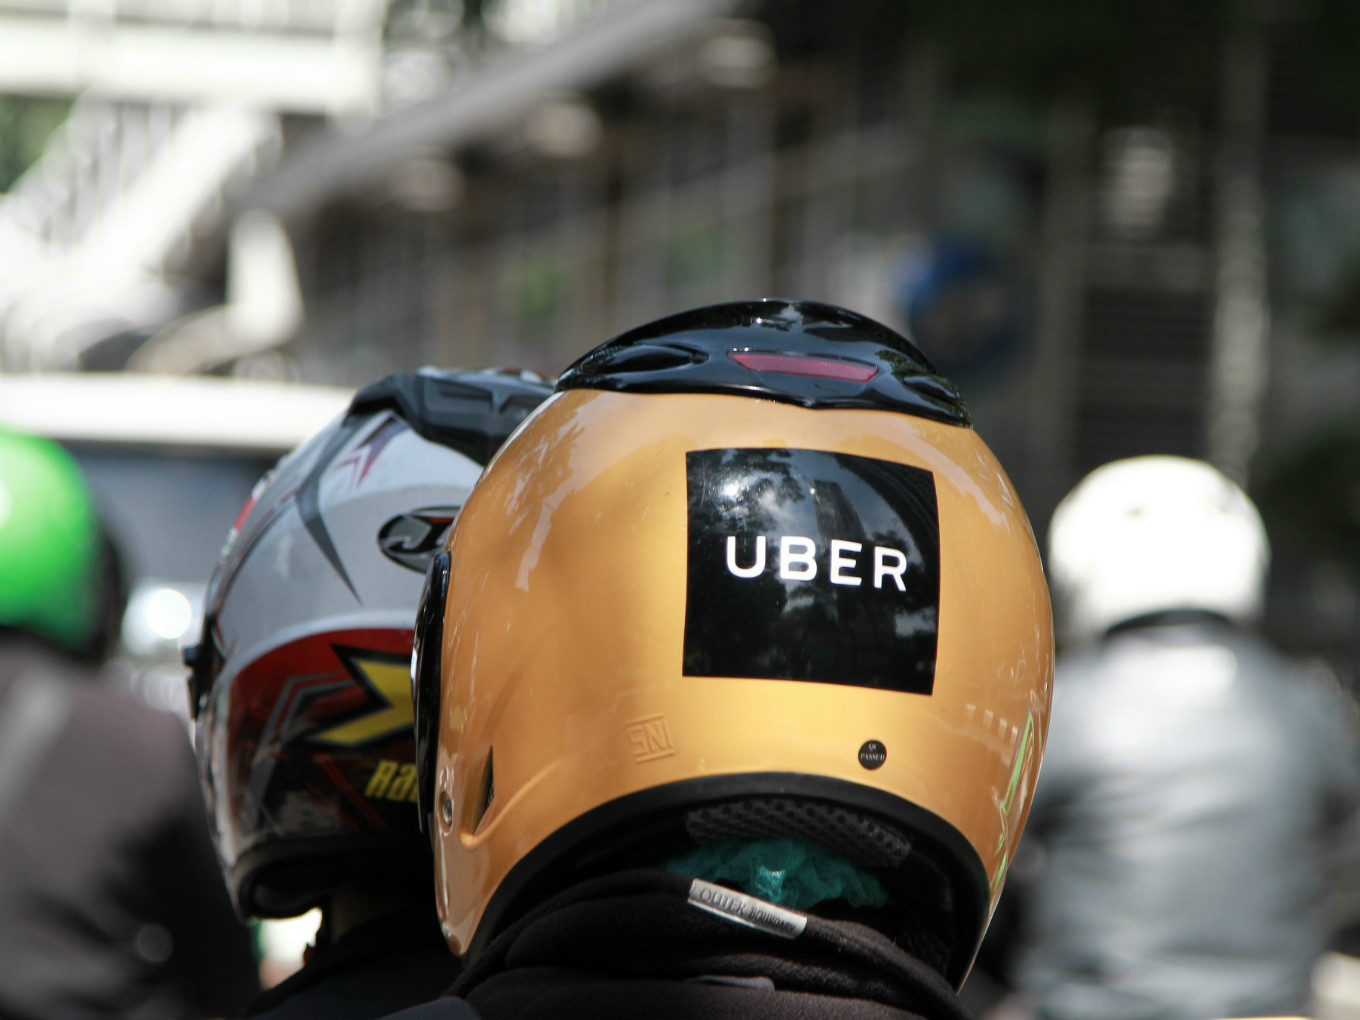 Uber Reportedly Files for IPO, One Day After Lyft